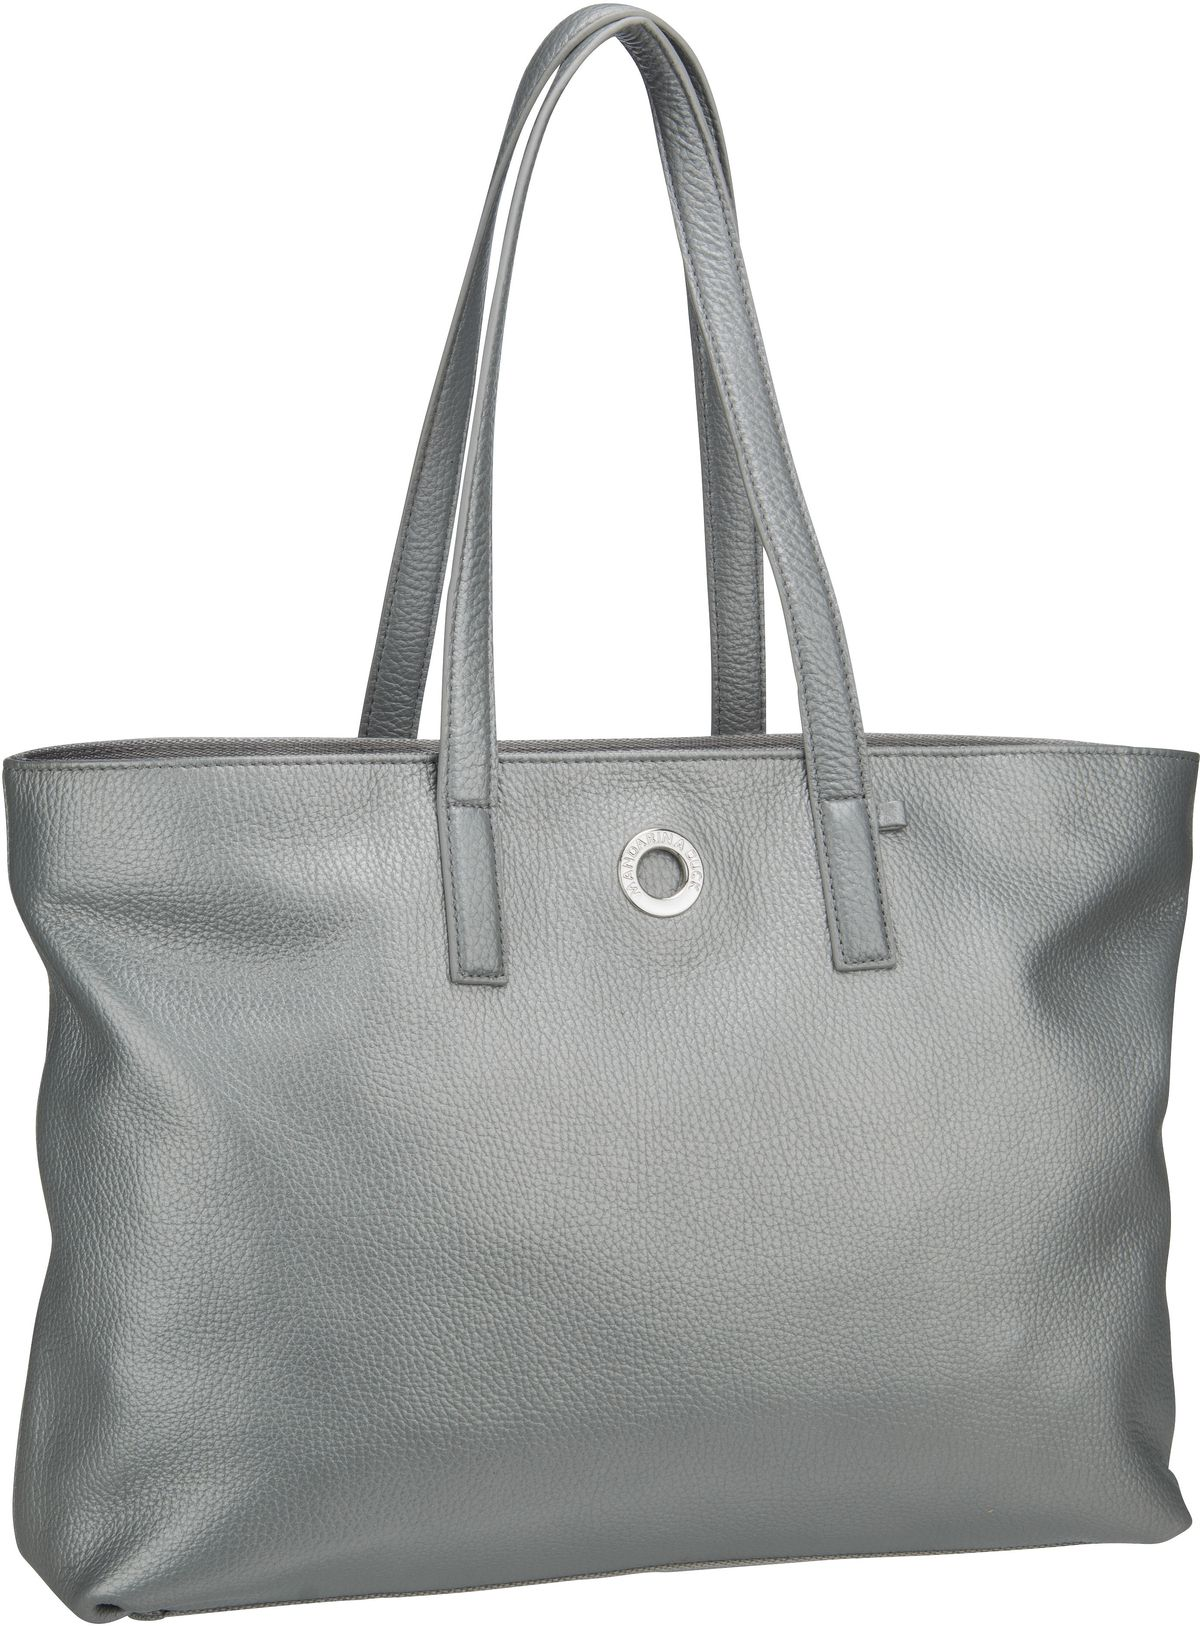 Shopper Mellow Leather Lux Tote Bag ZLT24 Silver